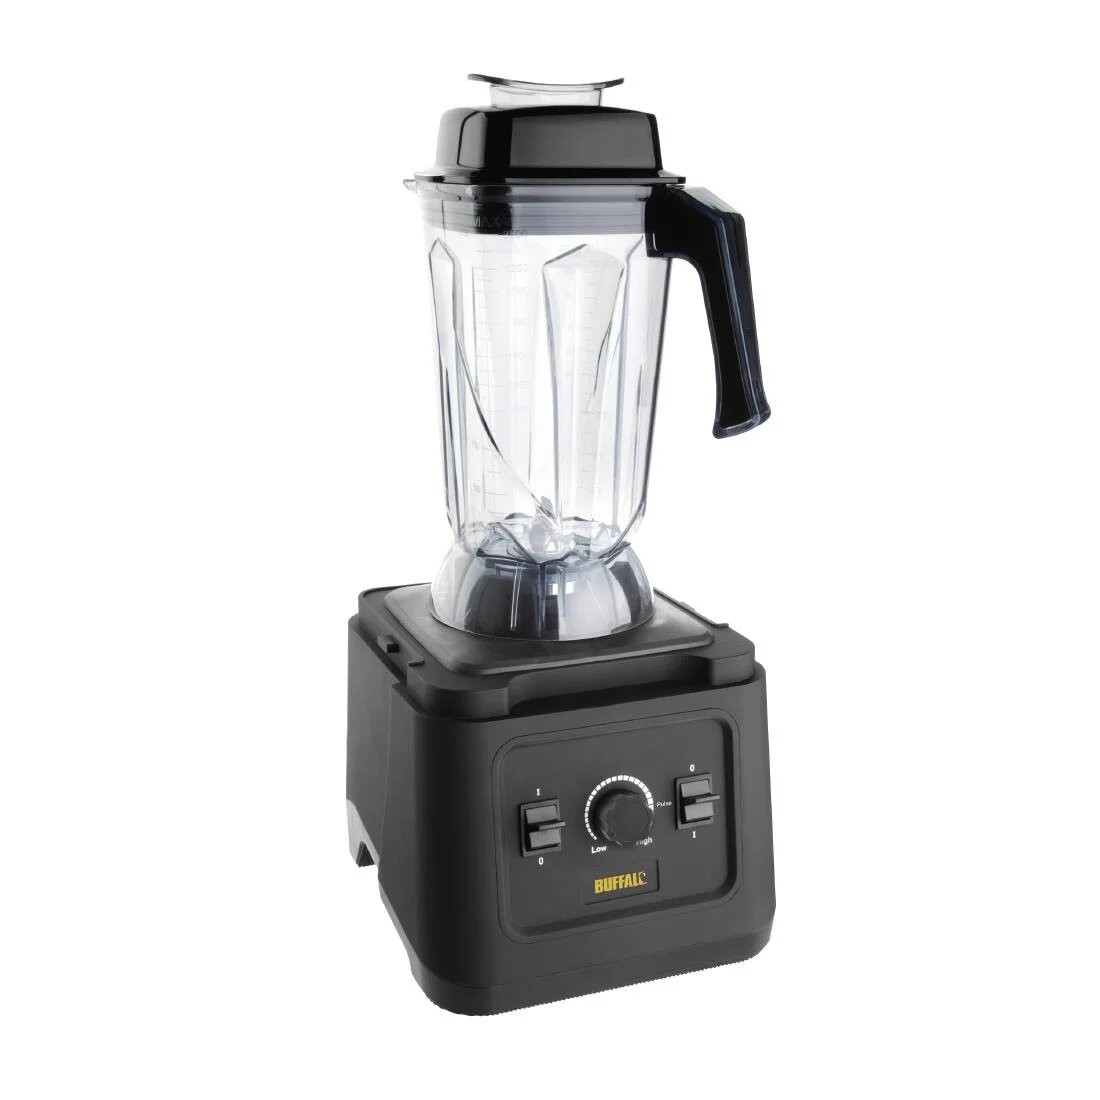 Buffalo CR836 2.5 Litre Bar Blender with Manual controls